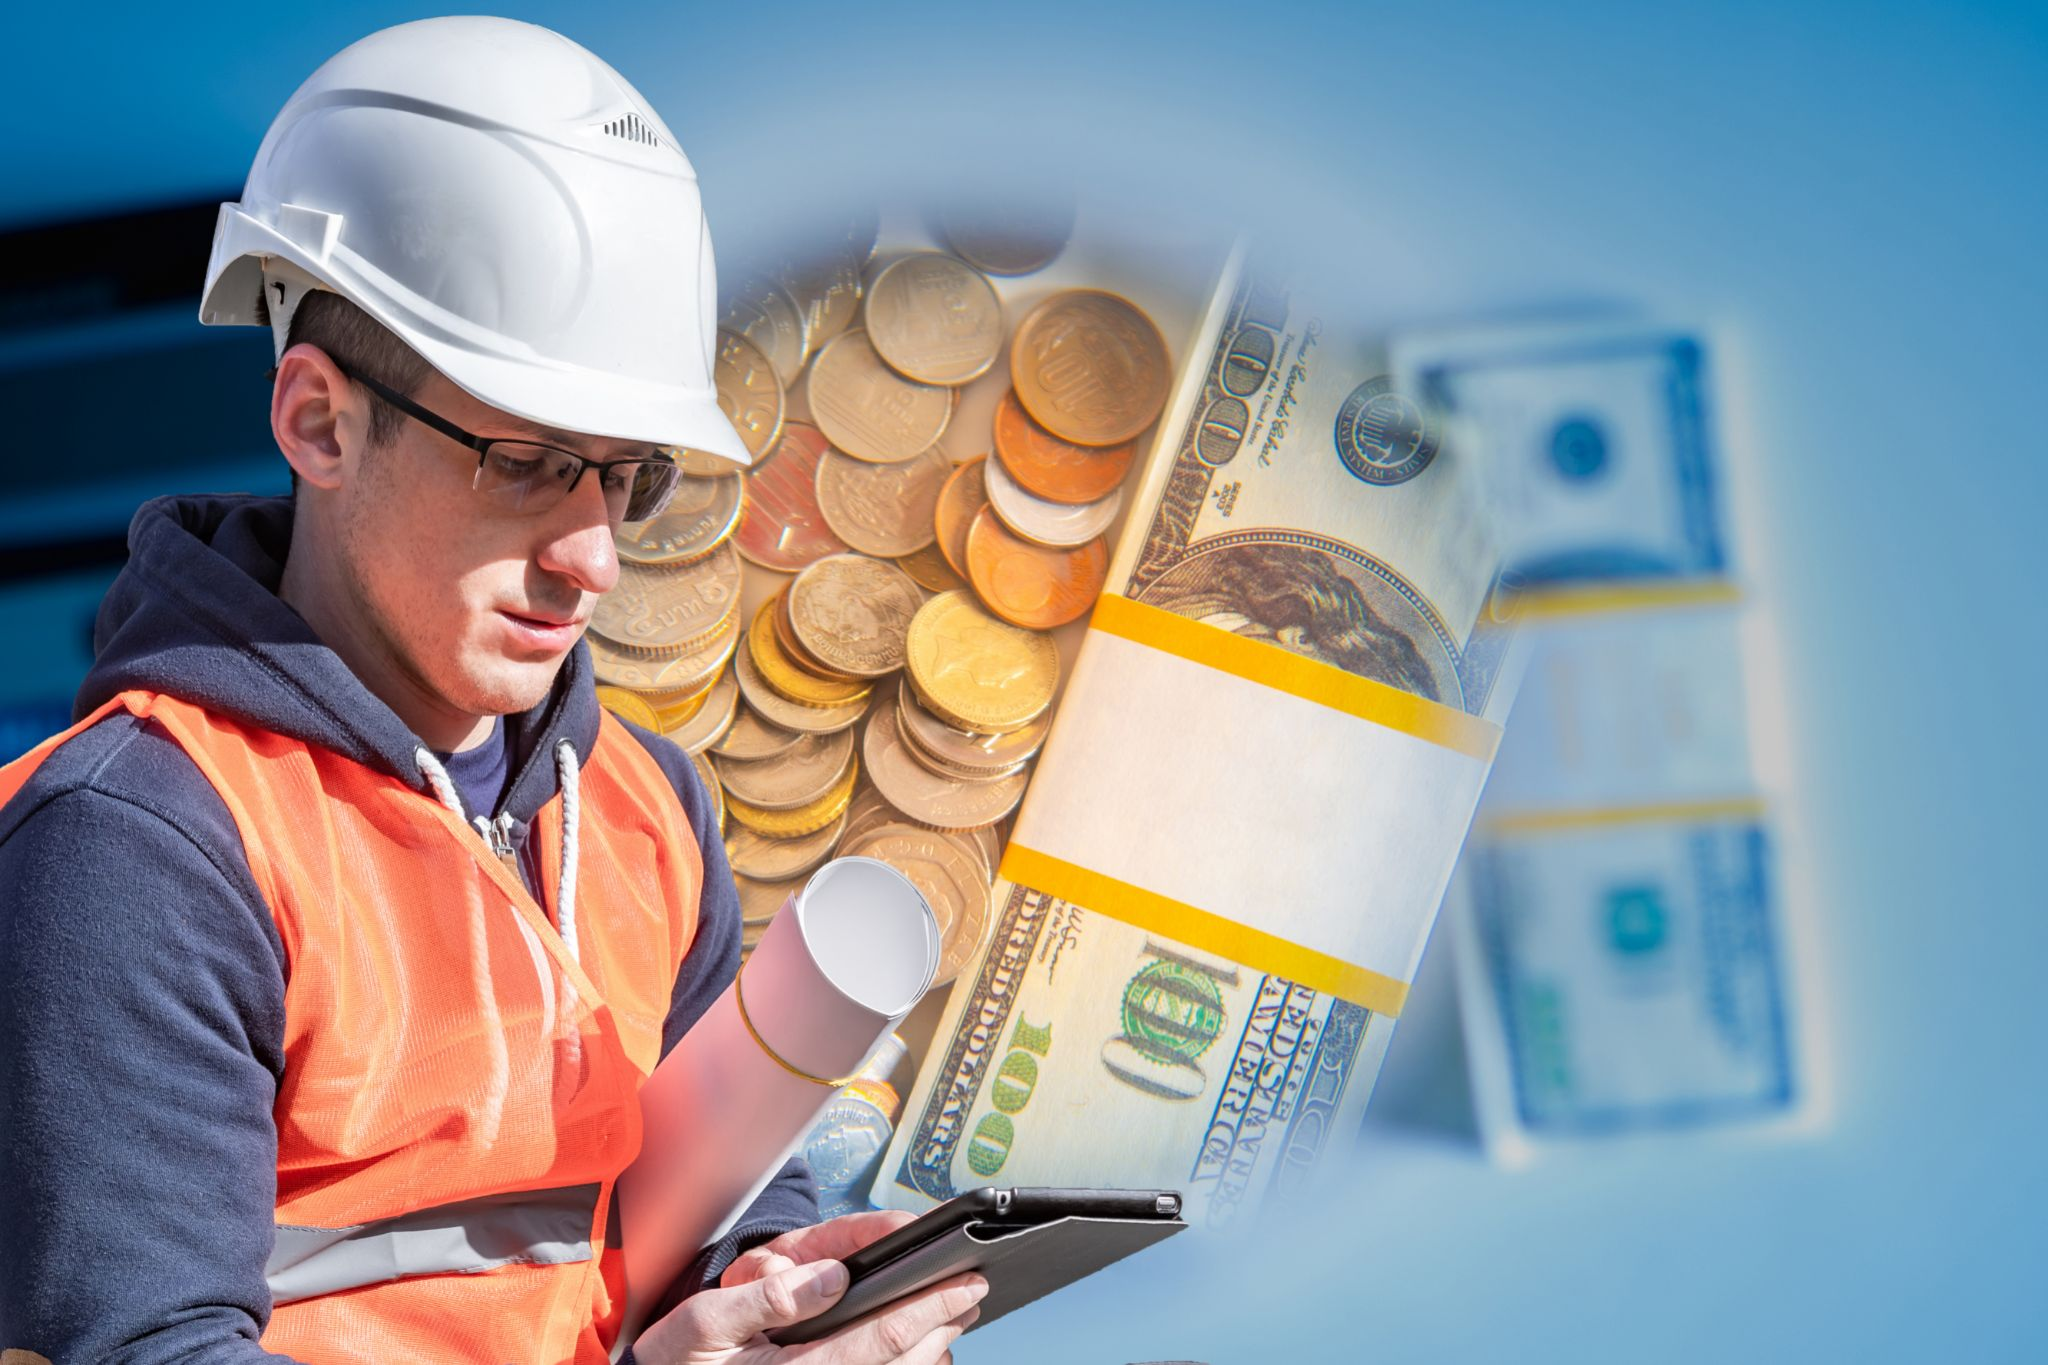 Structural engineer looking at a tablet with money bills and coins in the background.